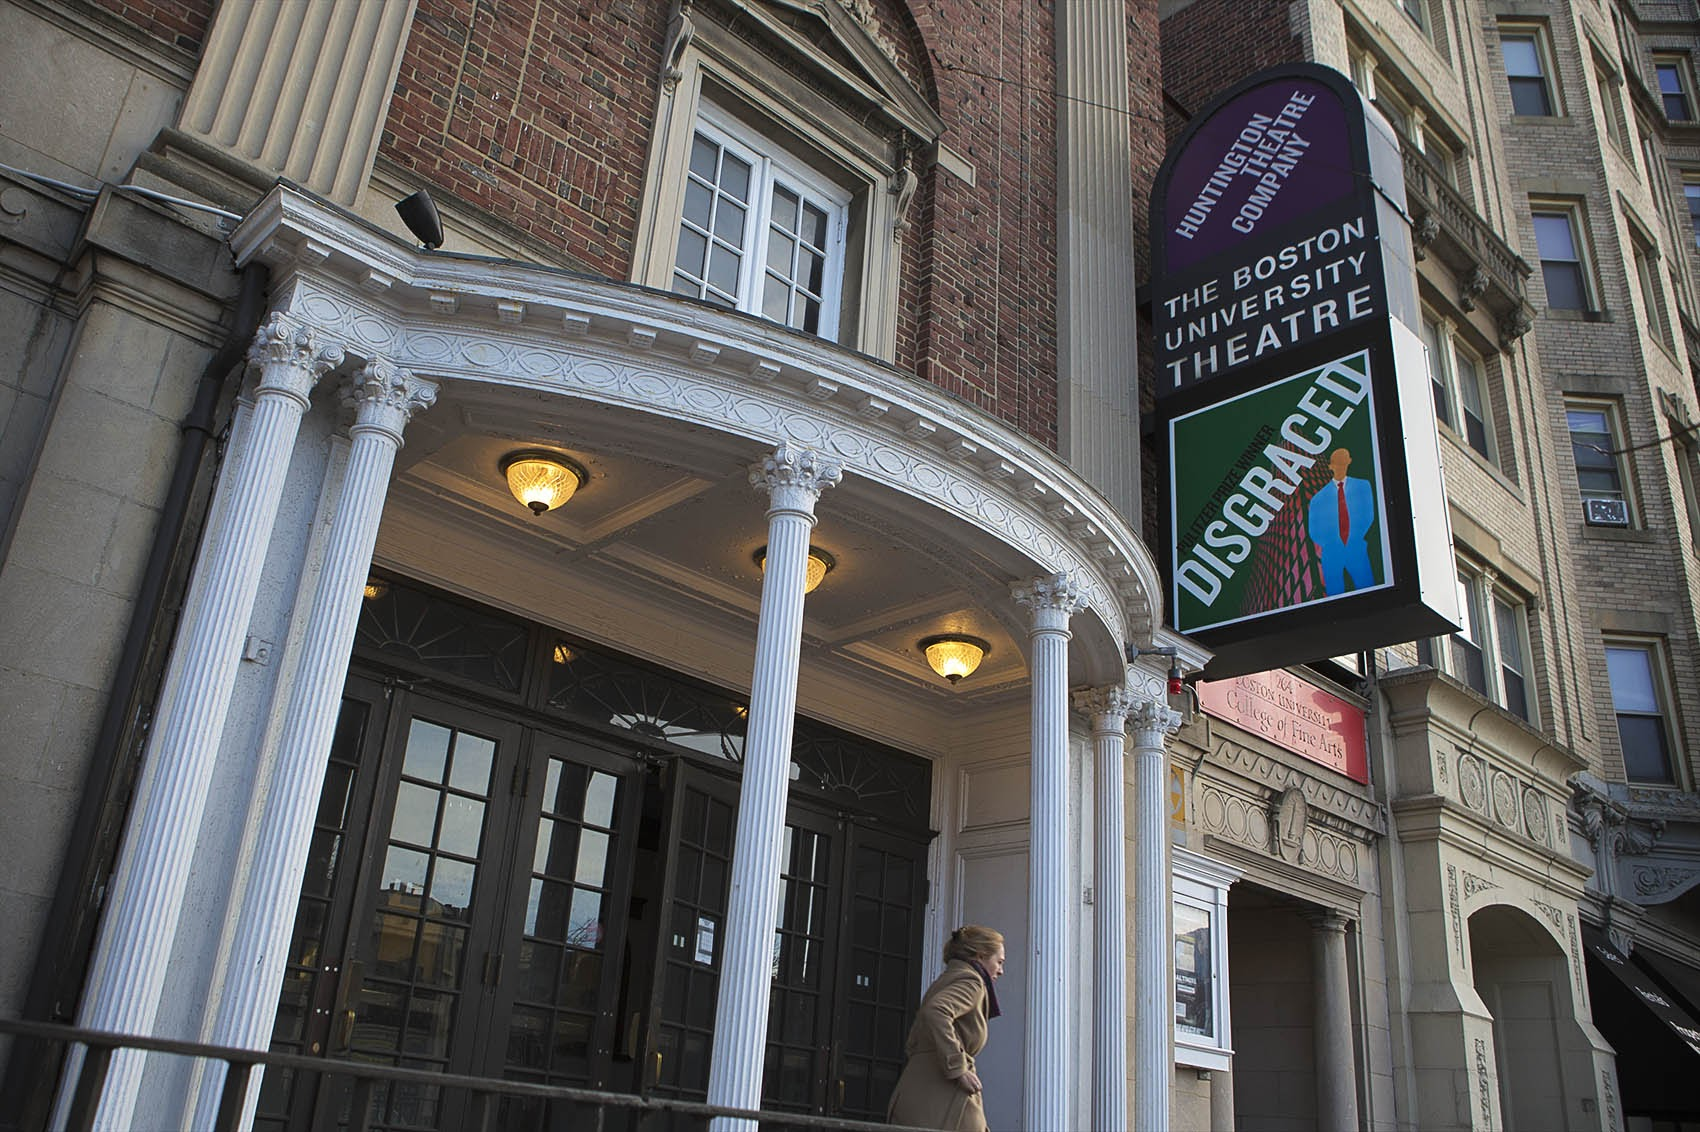 Huntington Theater Company on Huntington Avenue in Boston. (Jesse Costa/WBUR)